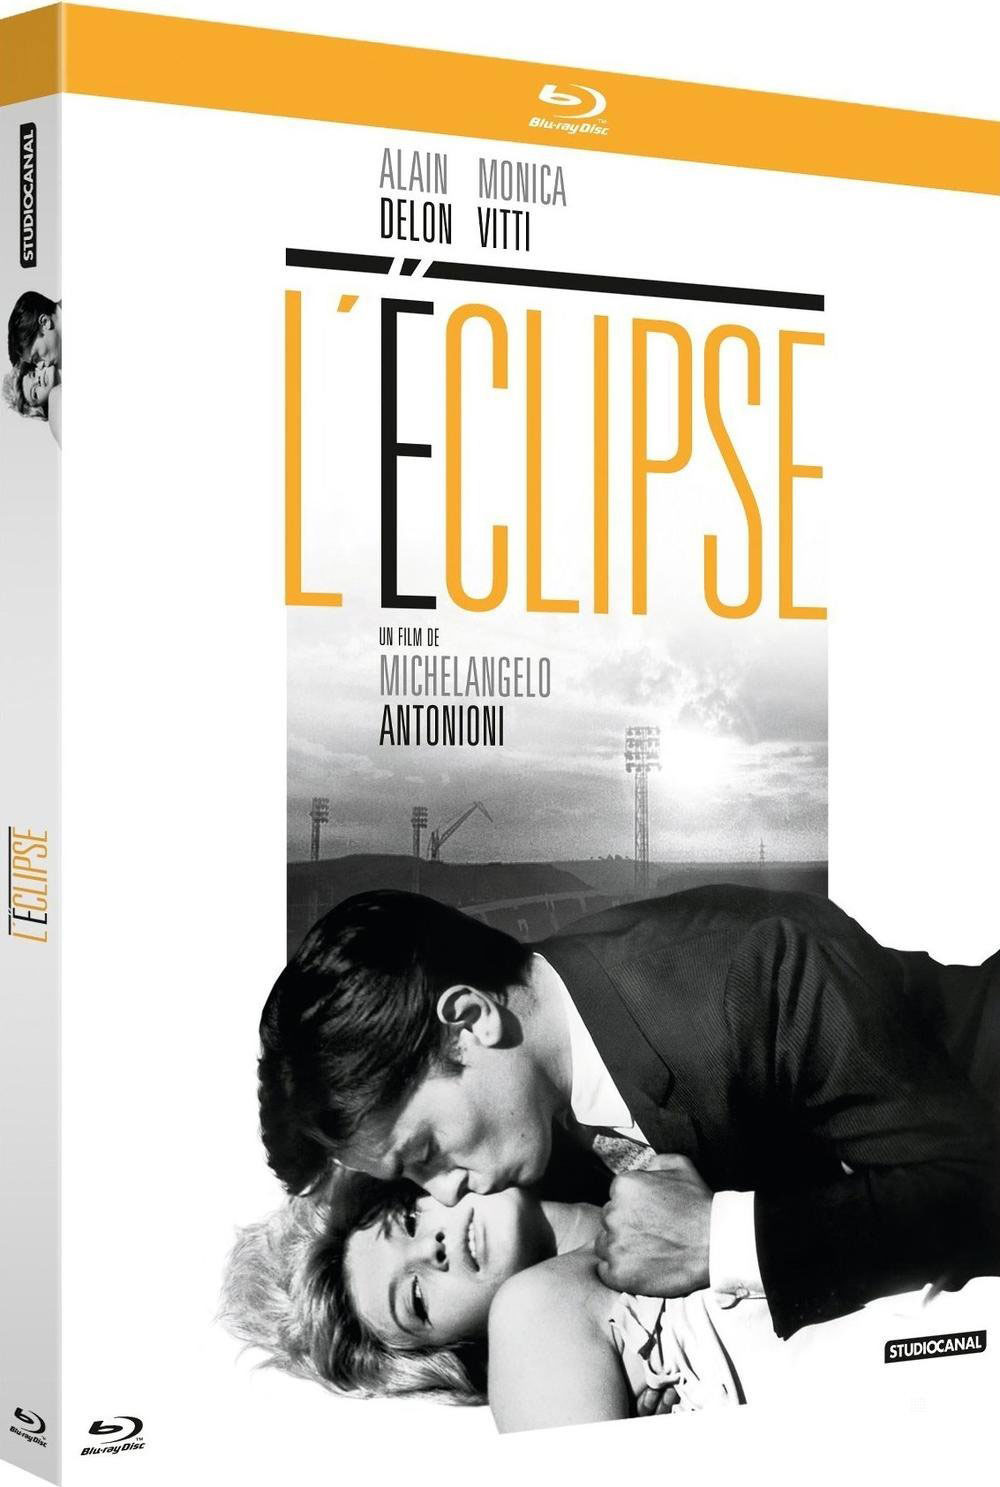 Jaquette Blu-ray - L'Eclipse